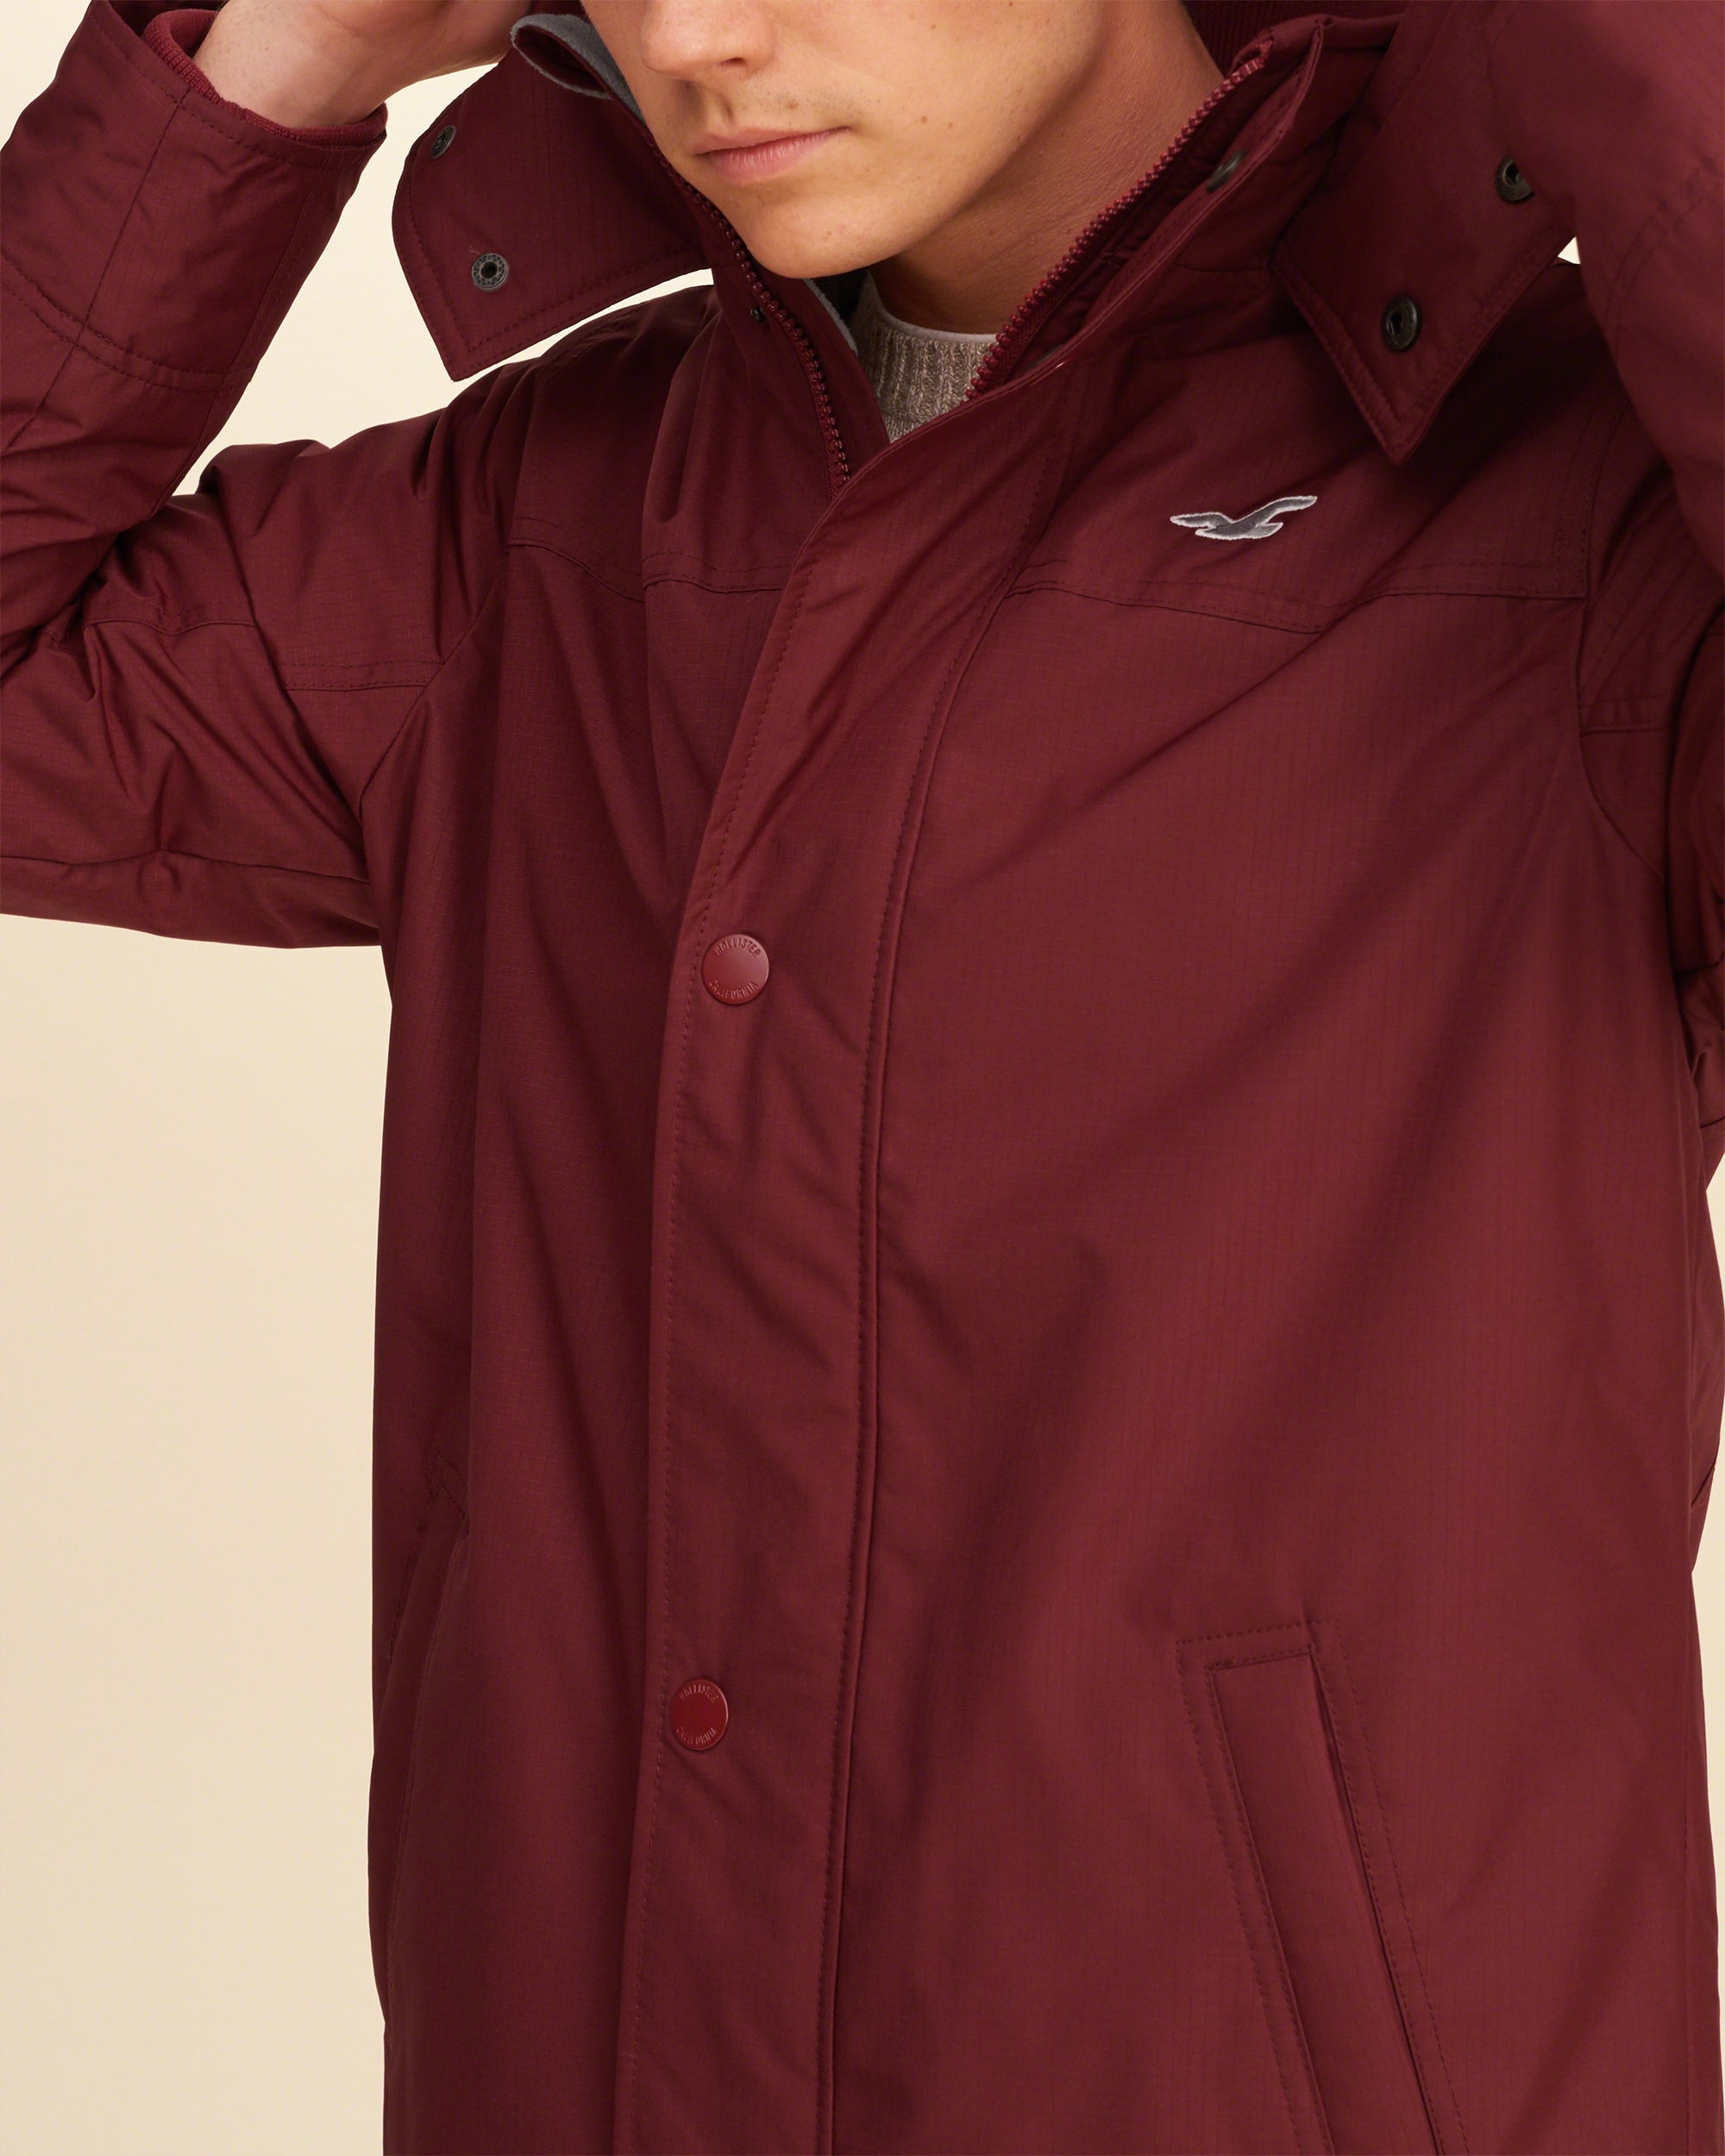 Hollister All-weather Fleece Lined Jacket in Red for Men